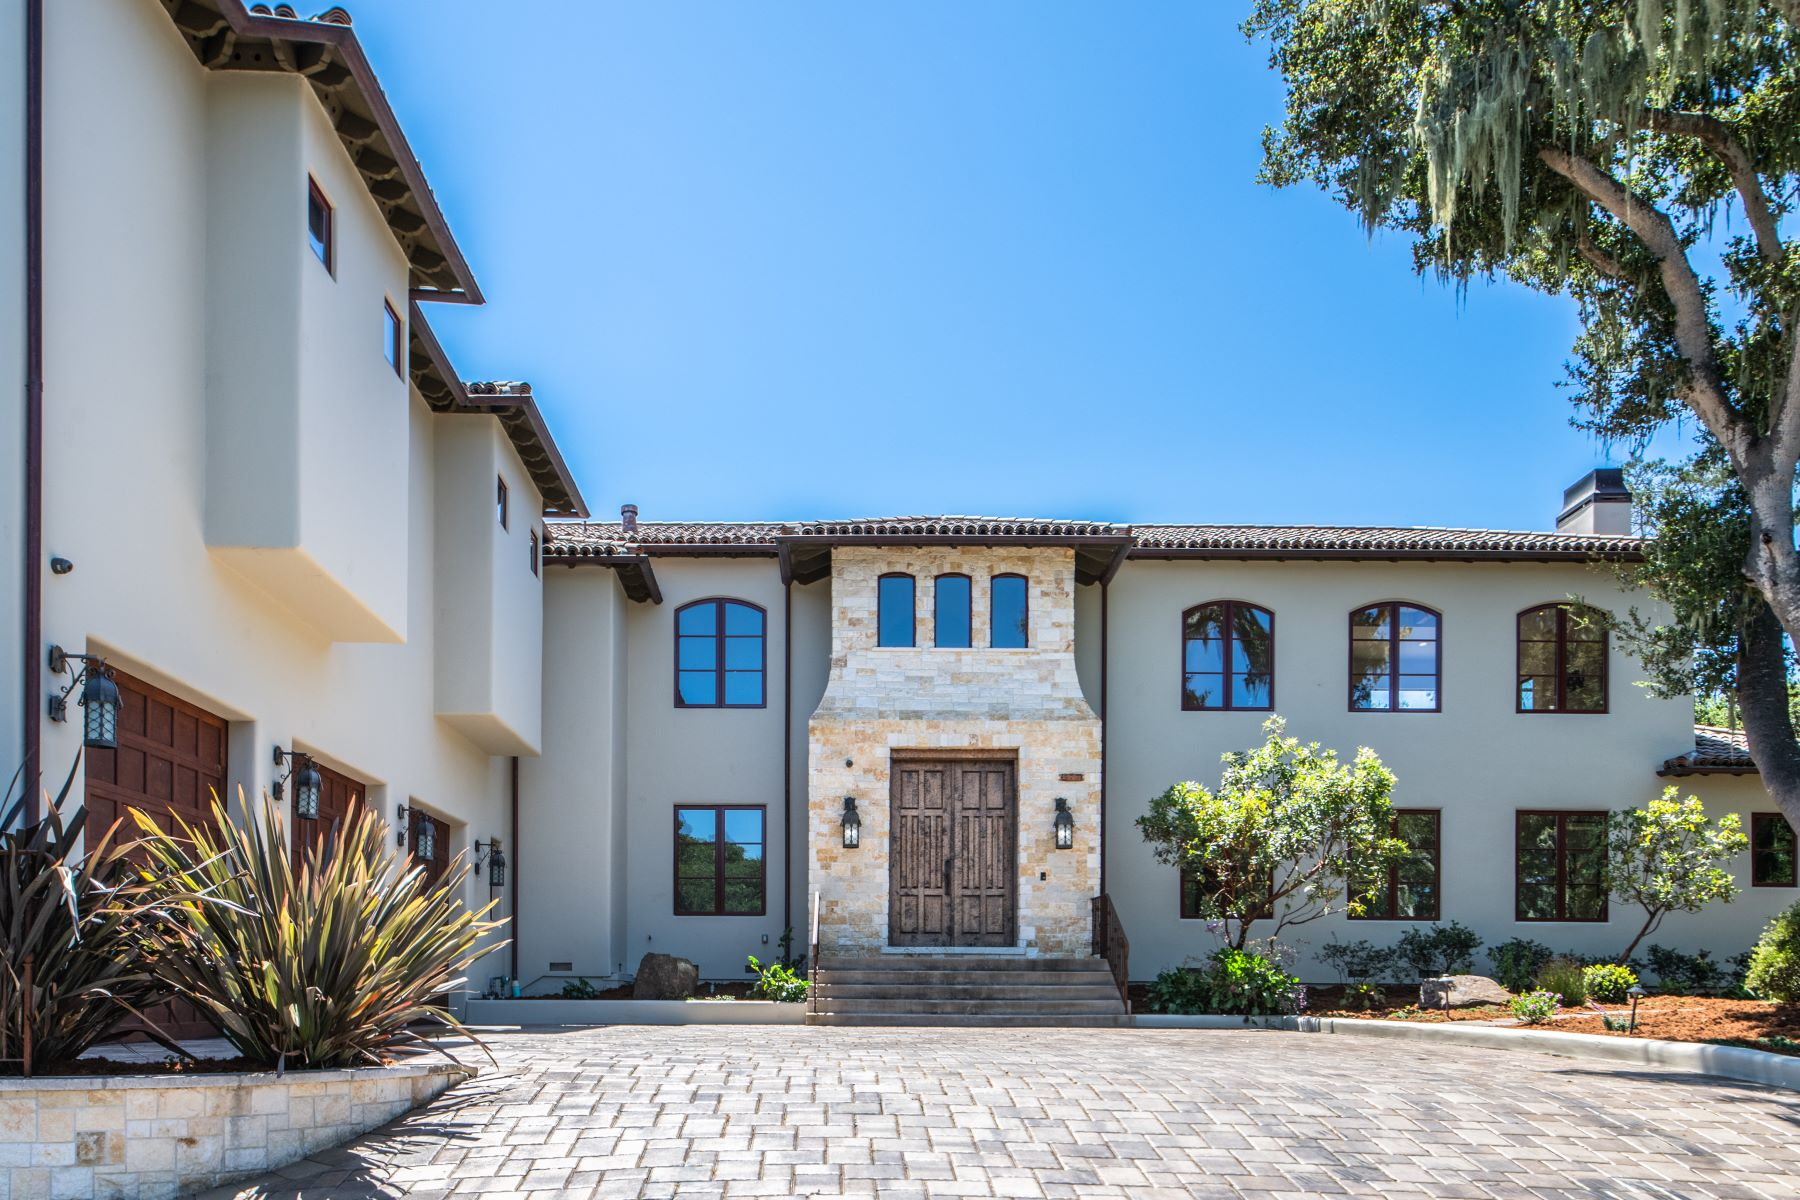 Single Family Homes for Sale at 577 Aguajito Rd 577 Aguajito Road Carmel, California 93923 United States